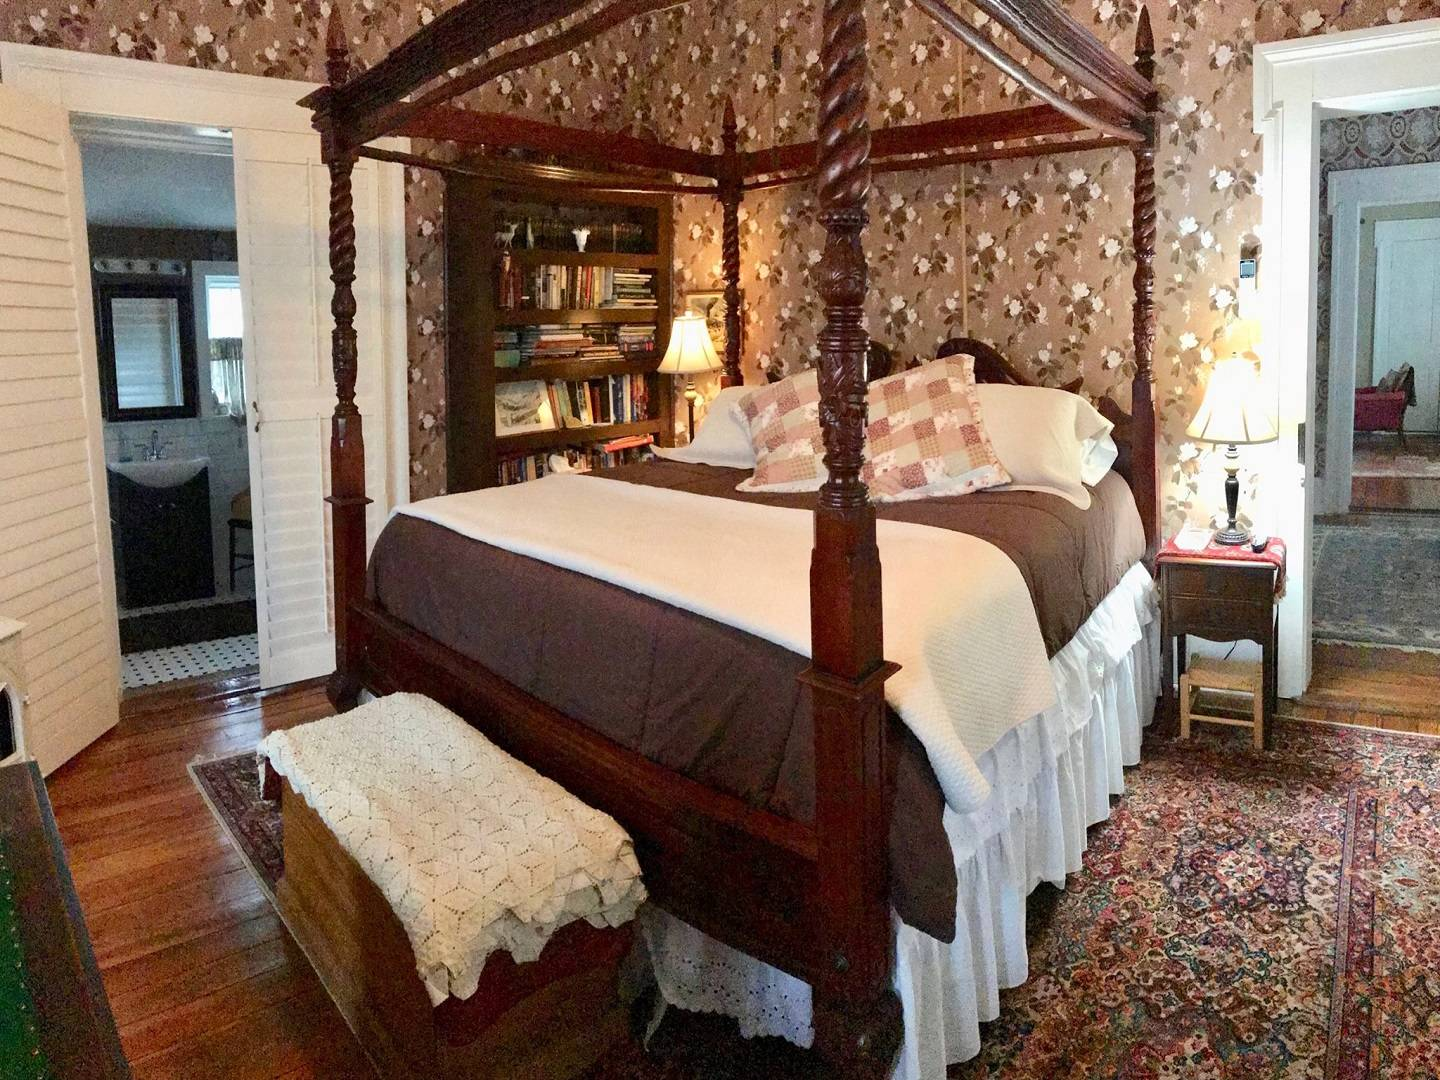 A bedroom with a bed and a chair in a room at  25 East Main B & B.